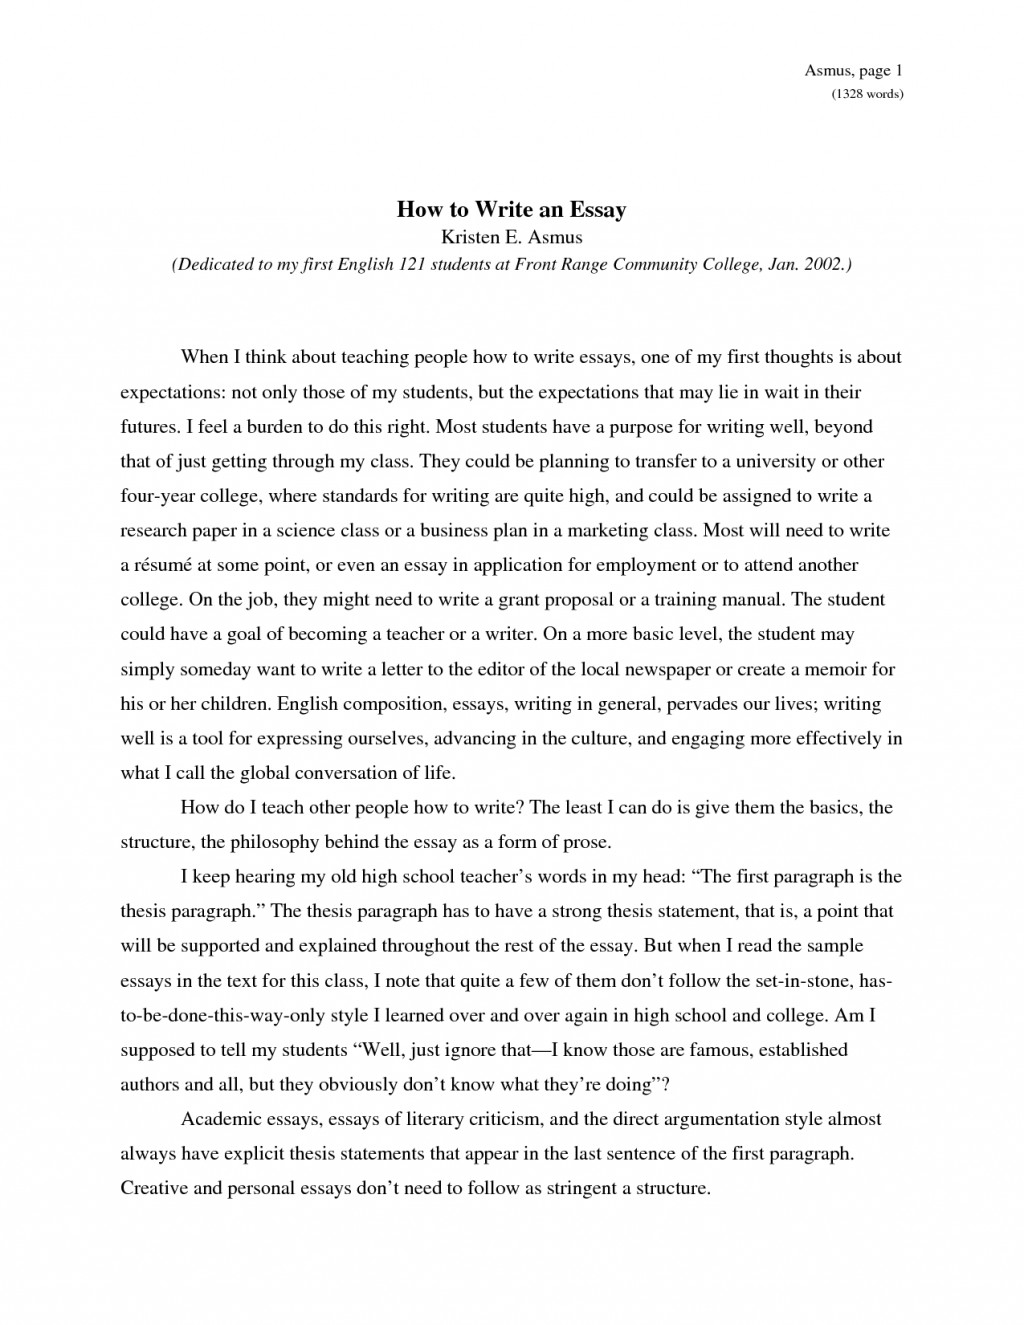 010 How To Write Essay Example An Obfuscata L Amazing About Yourself For A Job Interview Titles In Paper Large